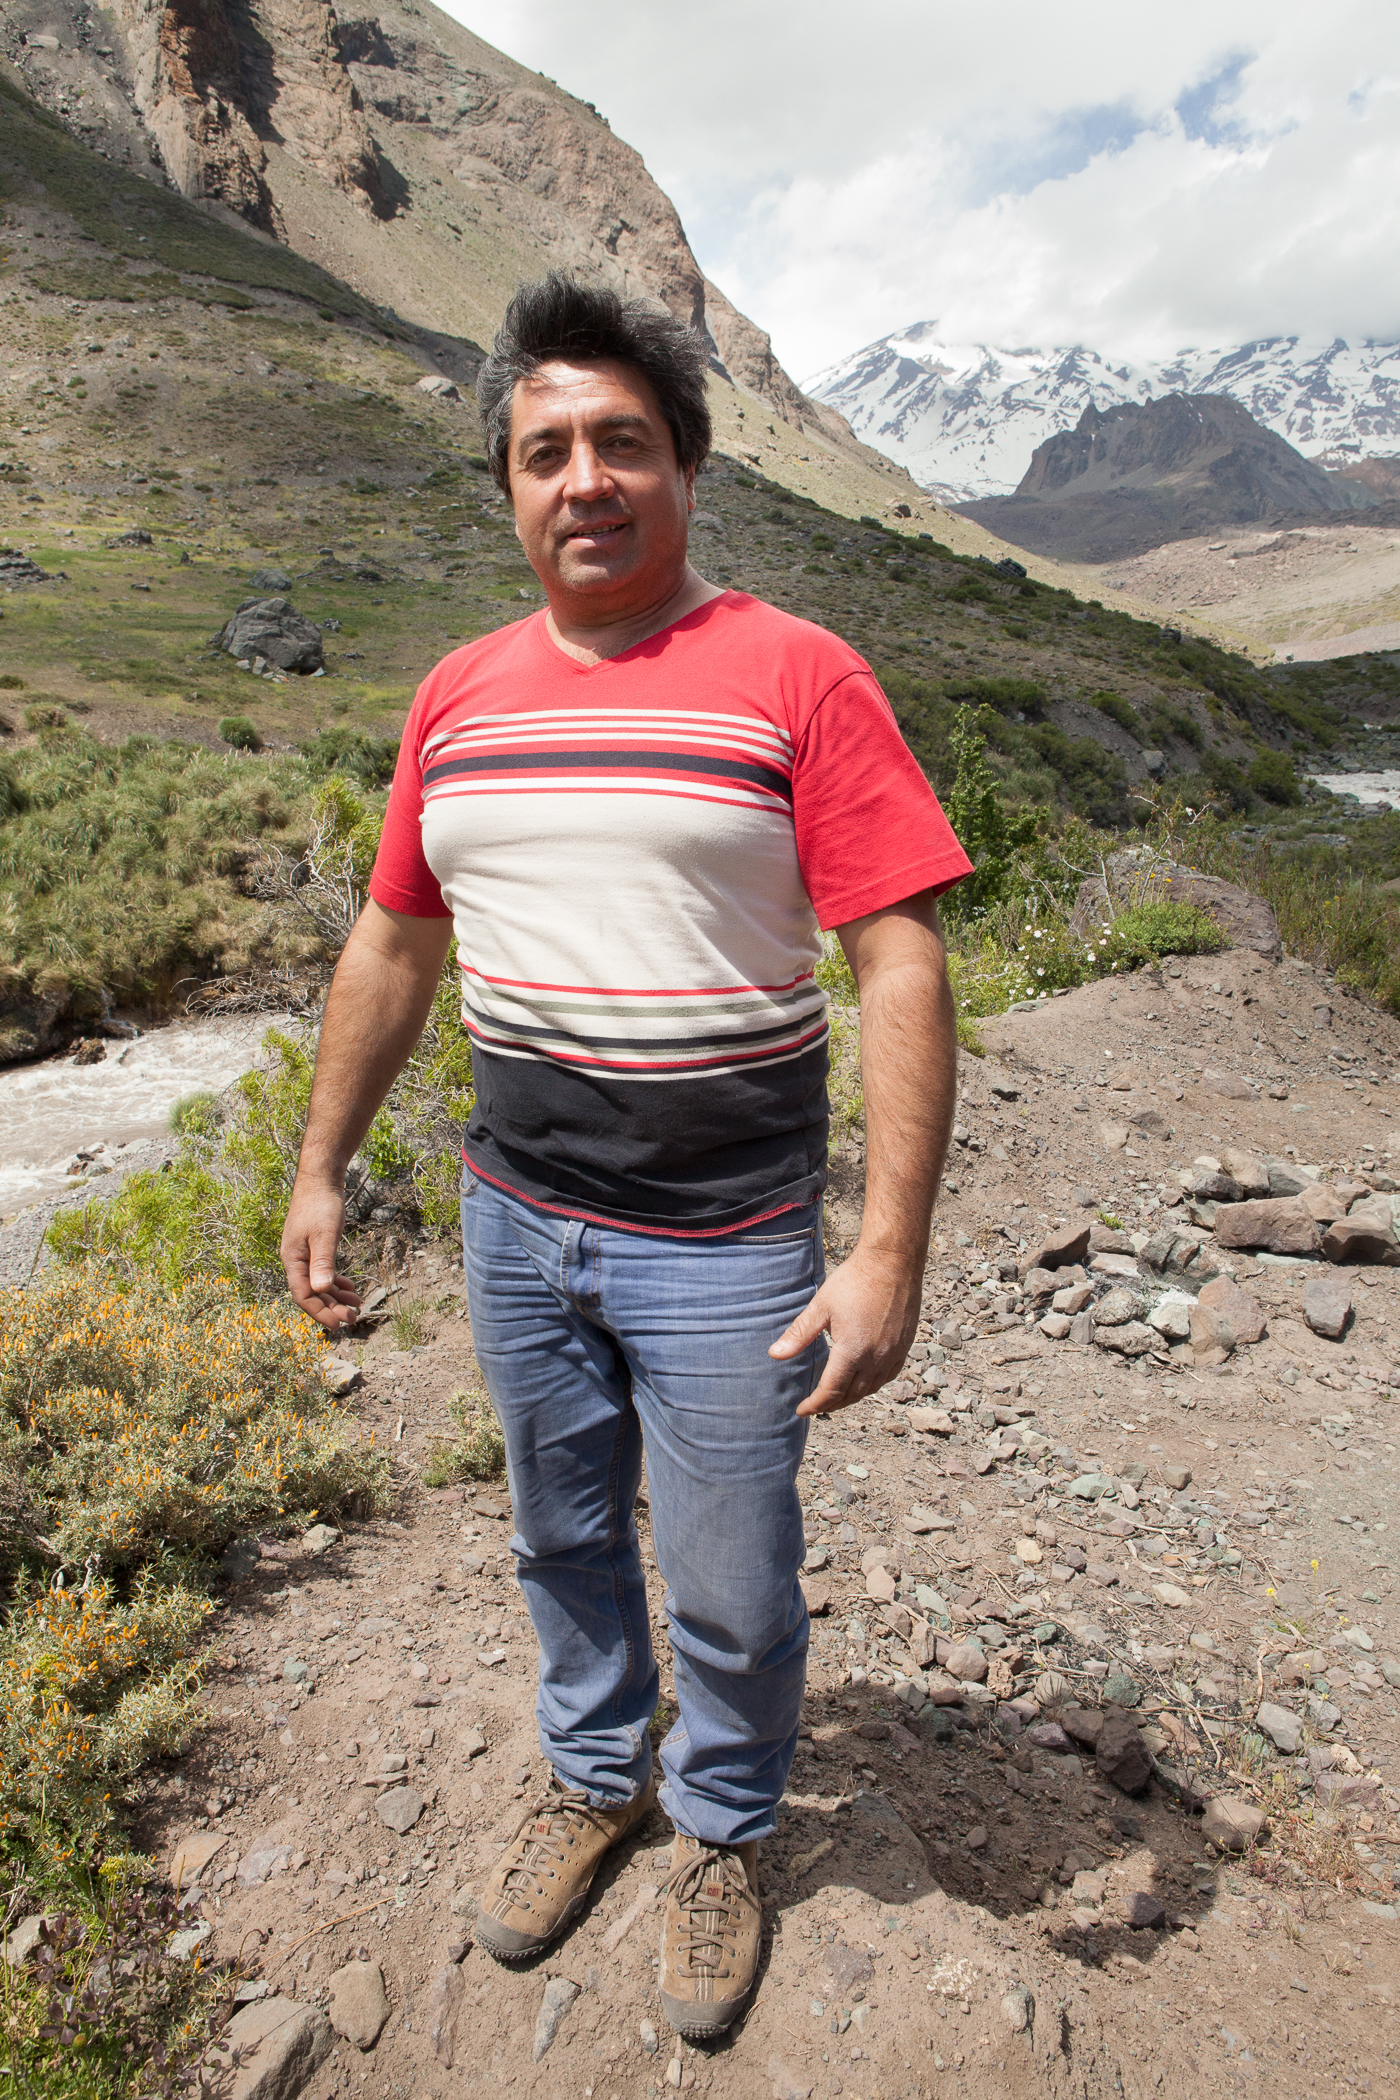 Marcos Acevedo, a local business owner of Turismo Montaña and advocate for the Maipo Libre movement.